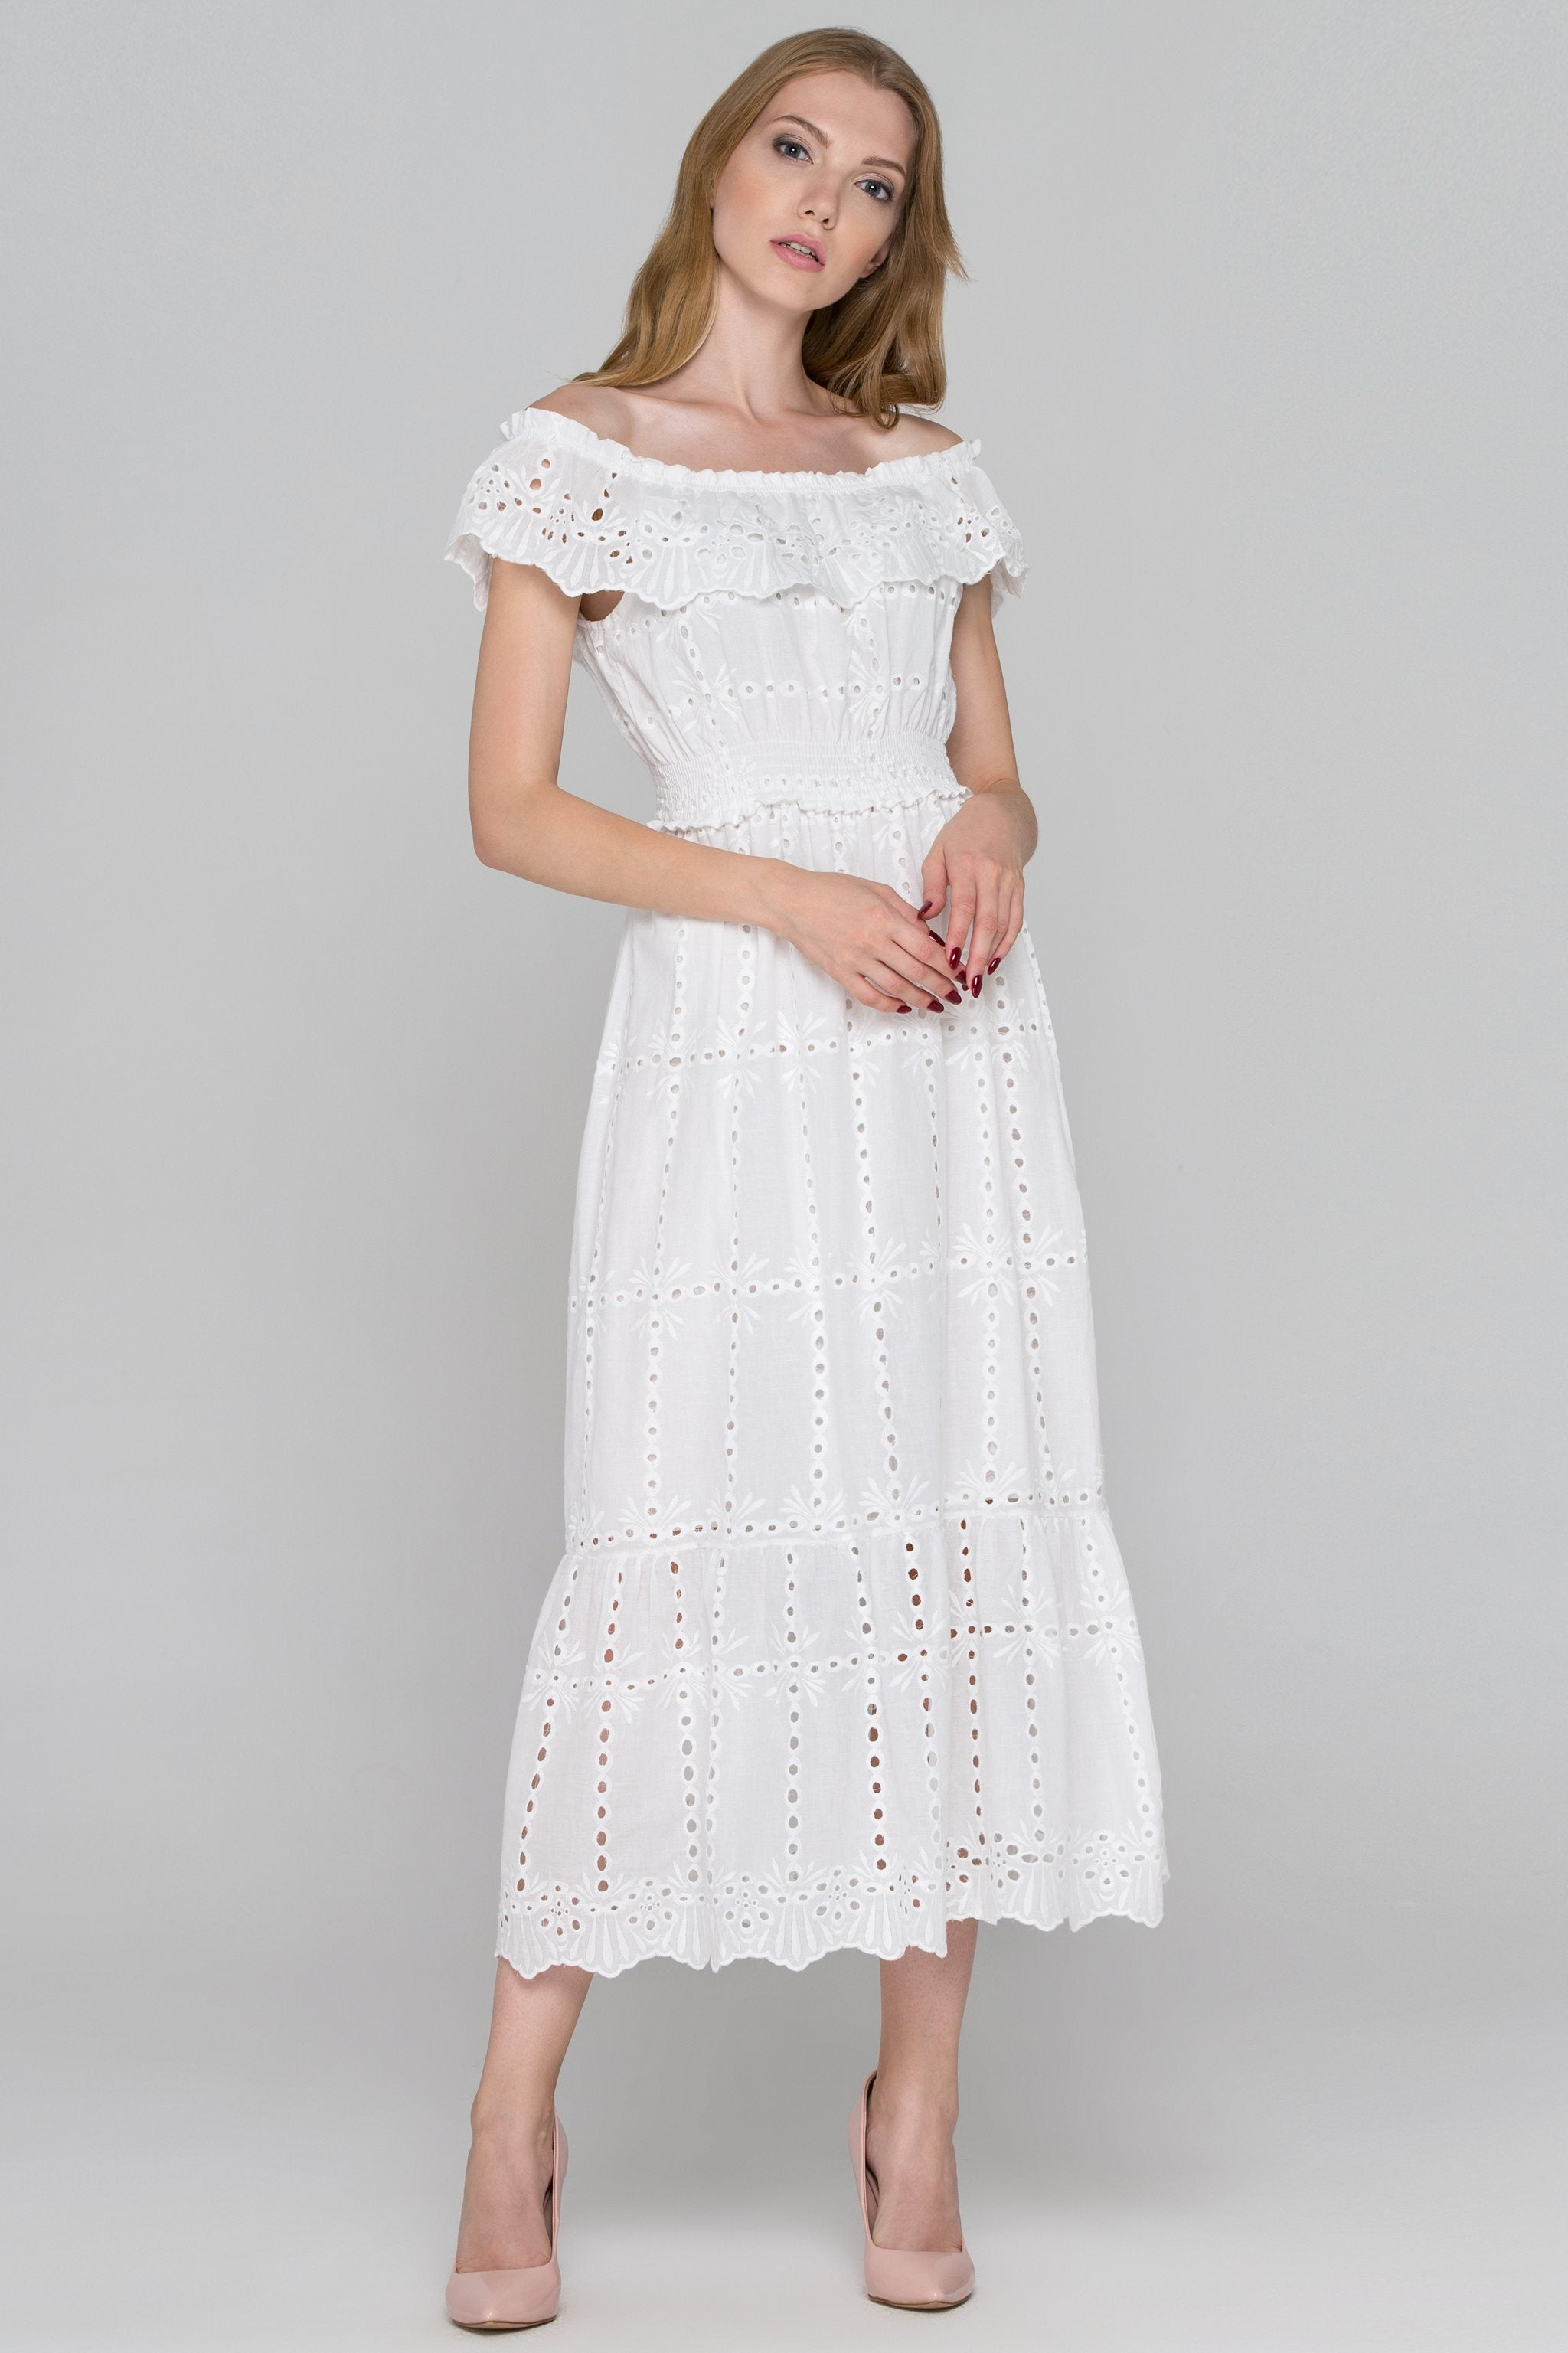 405cb281fa6 White Eyelet Cotton Off-the-Shoulder Midi Dress – OwnTheLooks